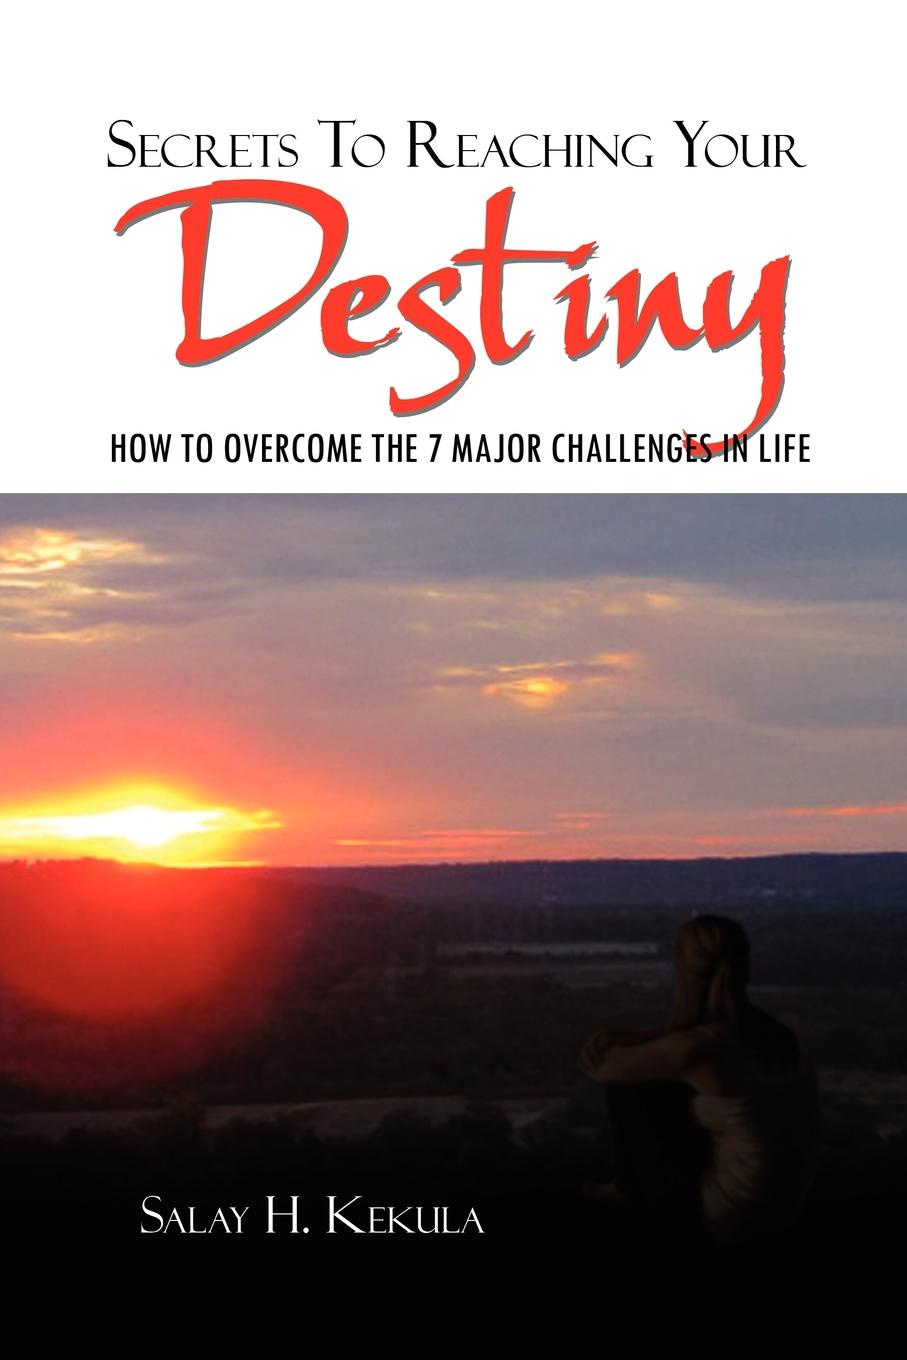 SALAY H. KEKULA Secrets To Reaching Your Destiny. HOW TO OVERCOME THE 7 MAJOR CHALLENGES IN LIFE